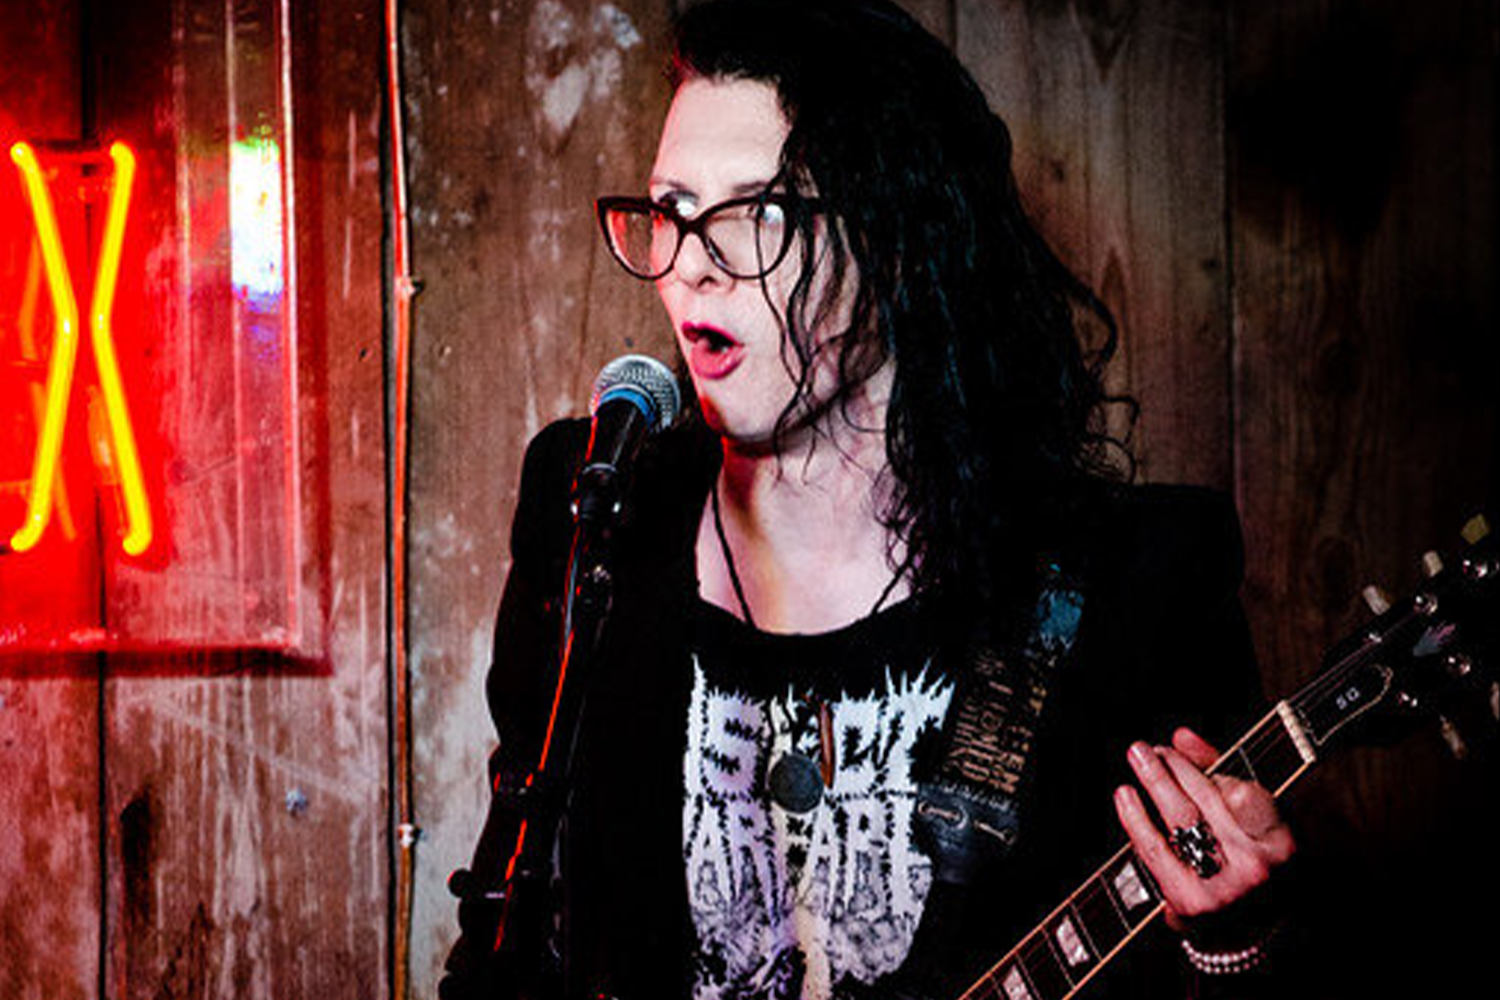 Andrew O'Neill (c) Andy Taylor